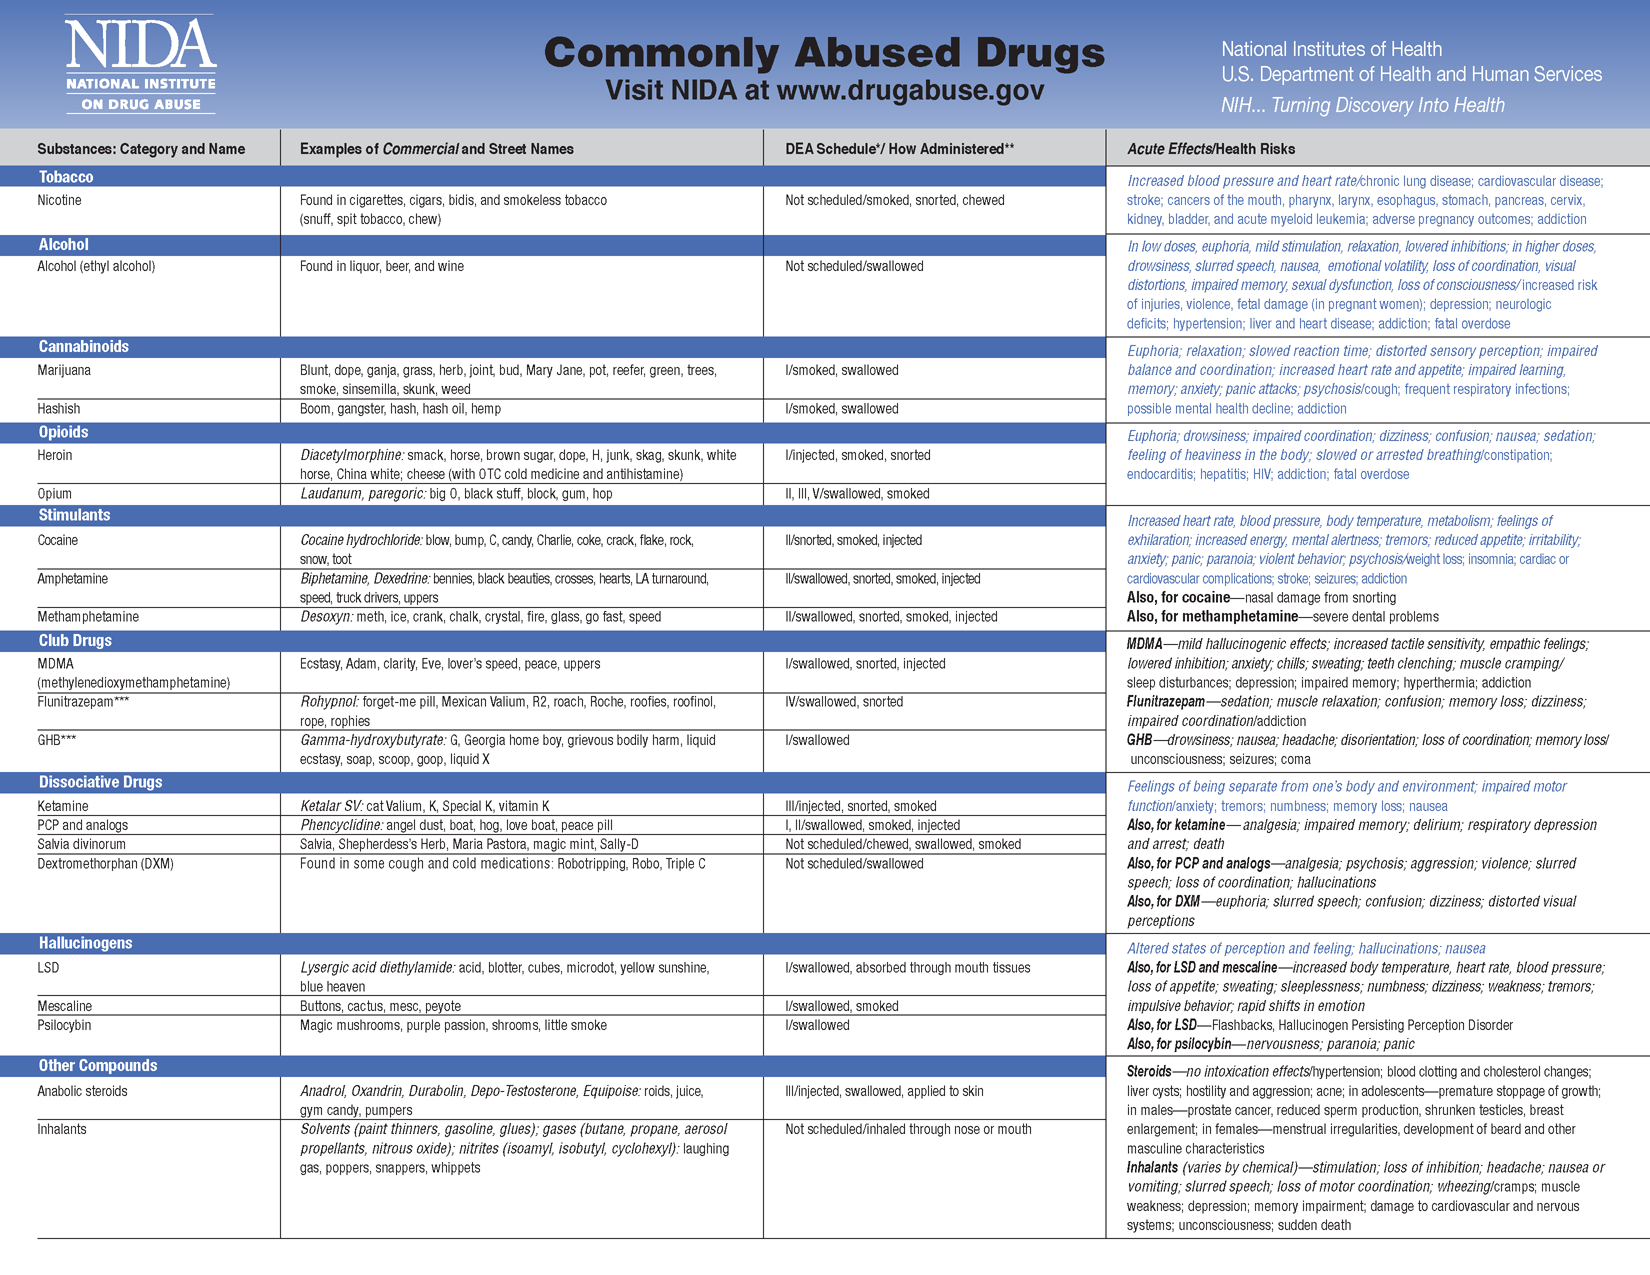 """common drugs that are being abused Opioid abuse is one of the most common substance abuse issues in the united states today according to the national institute on drug abuse, """"it is estimated that between 264 million and 36 million people abuse opioids worldwide, with an estimated 21 million people in the united states suffering from substance use disorders related to prescription opioid pain relievers in 2012 and an."""